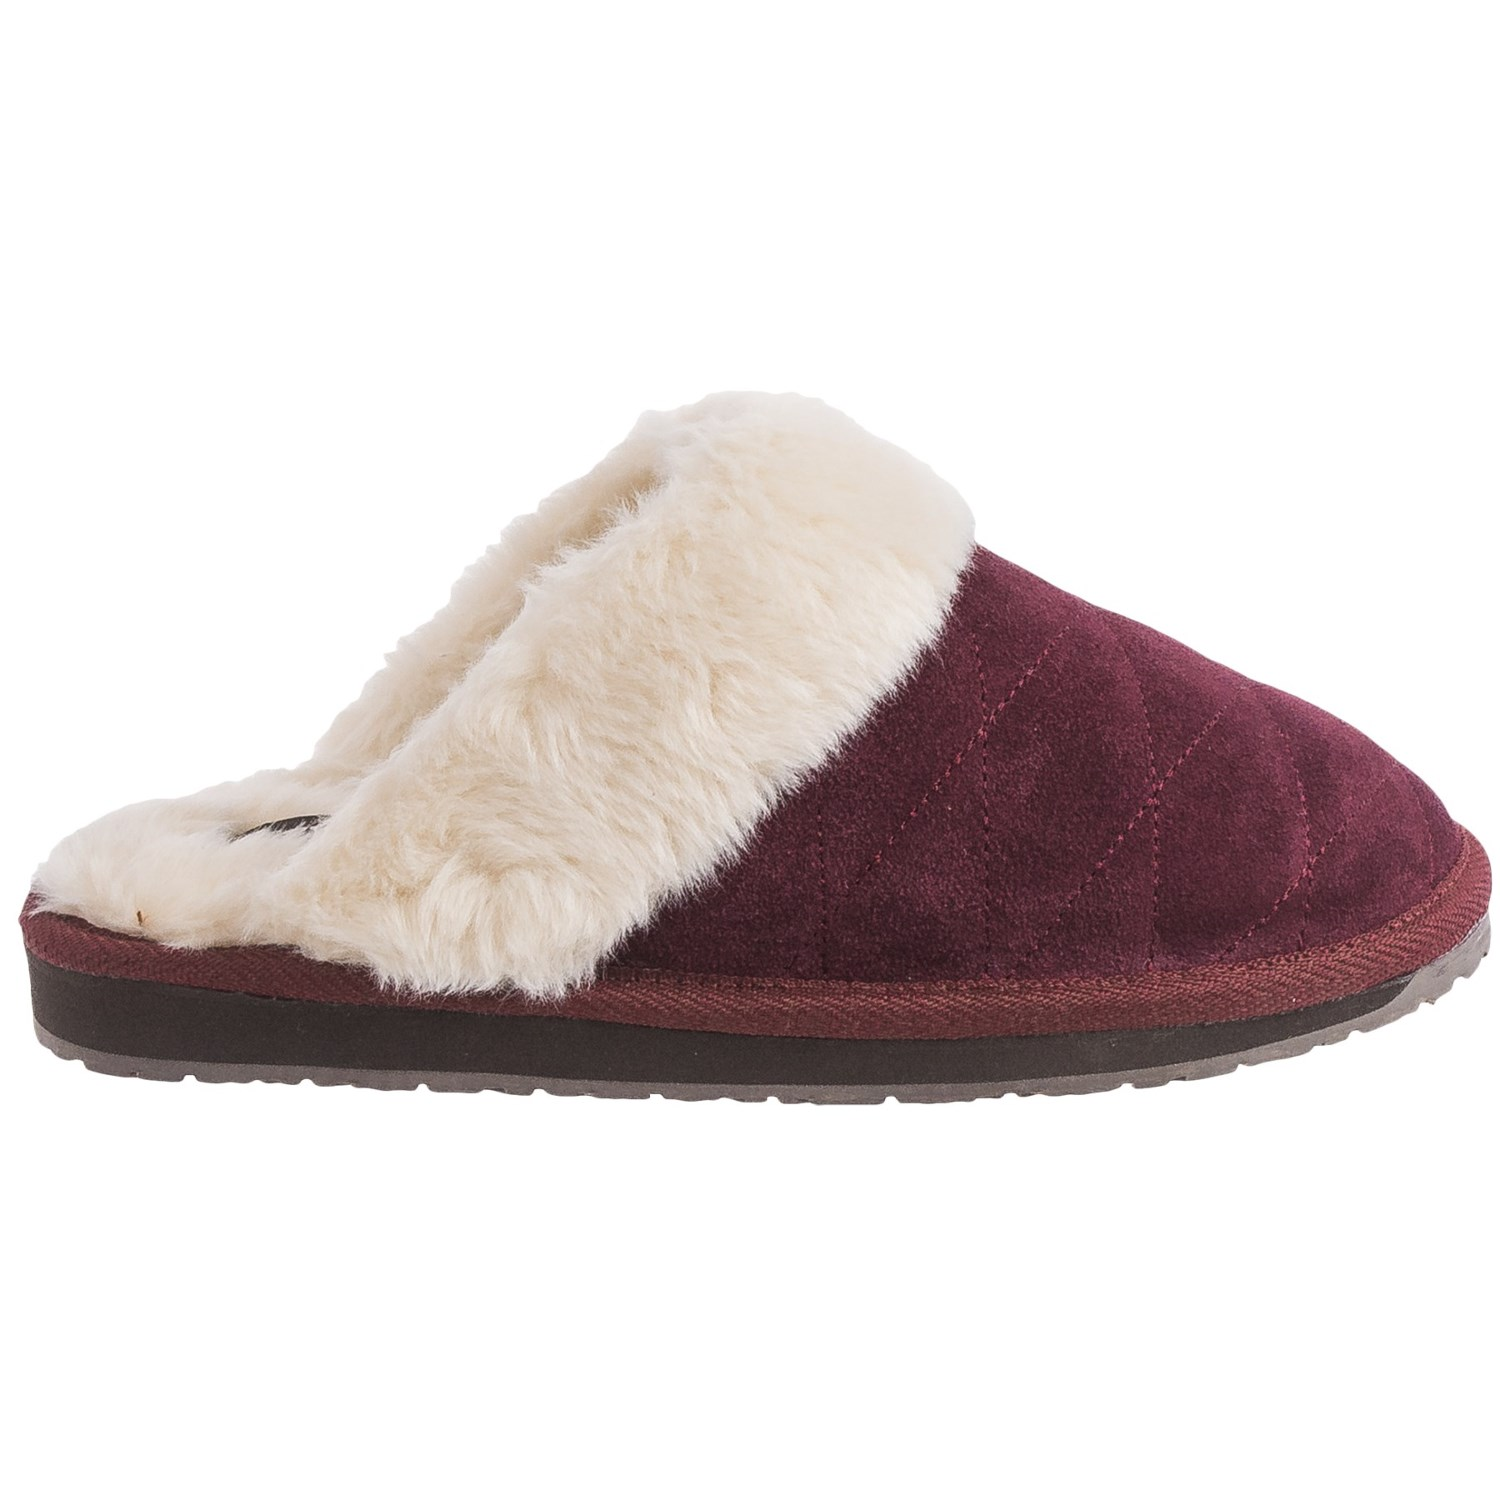 Ugg Bedroom Slippers Clarks Quilted Scuff Slippers For Women Save 65